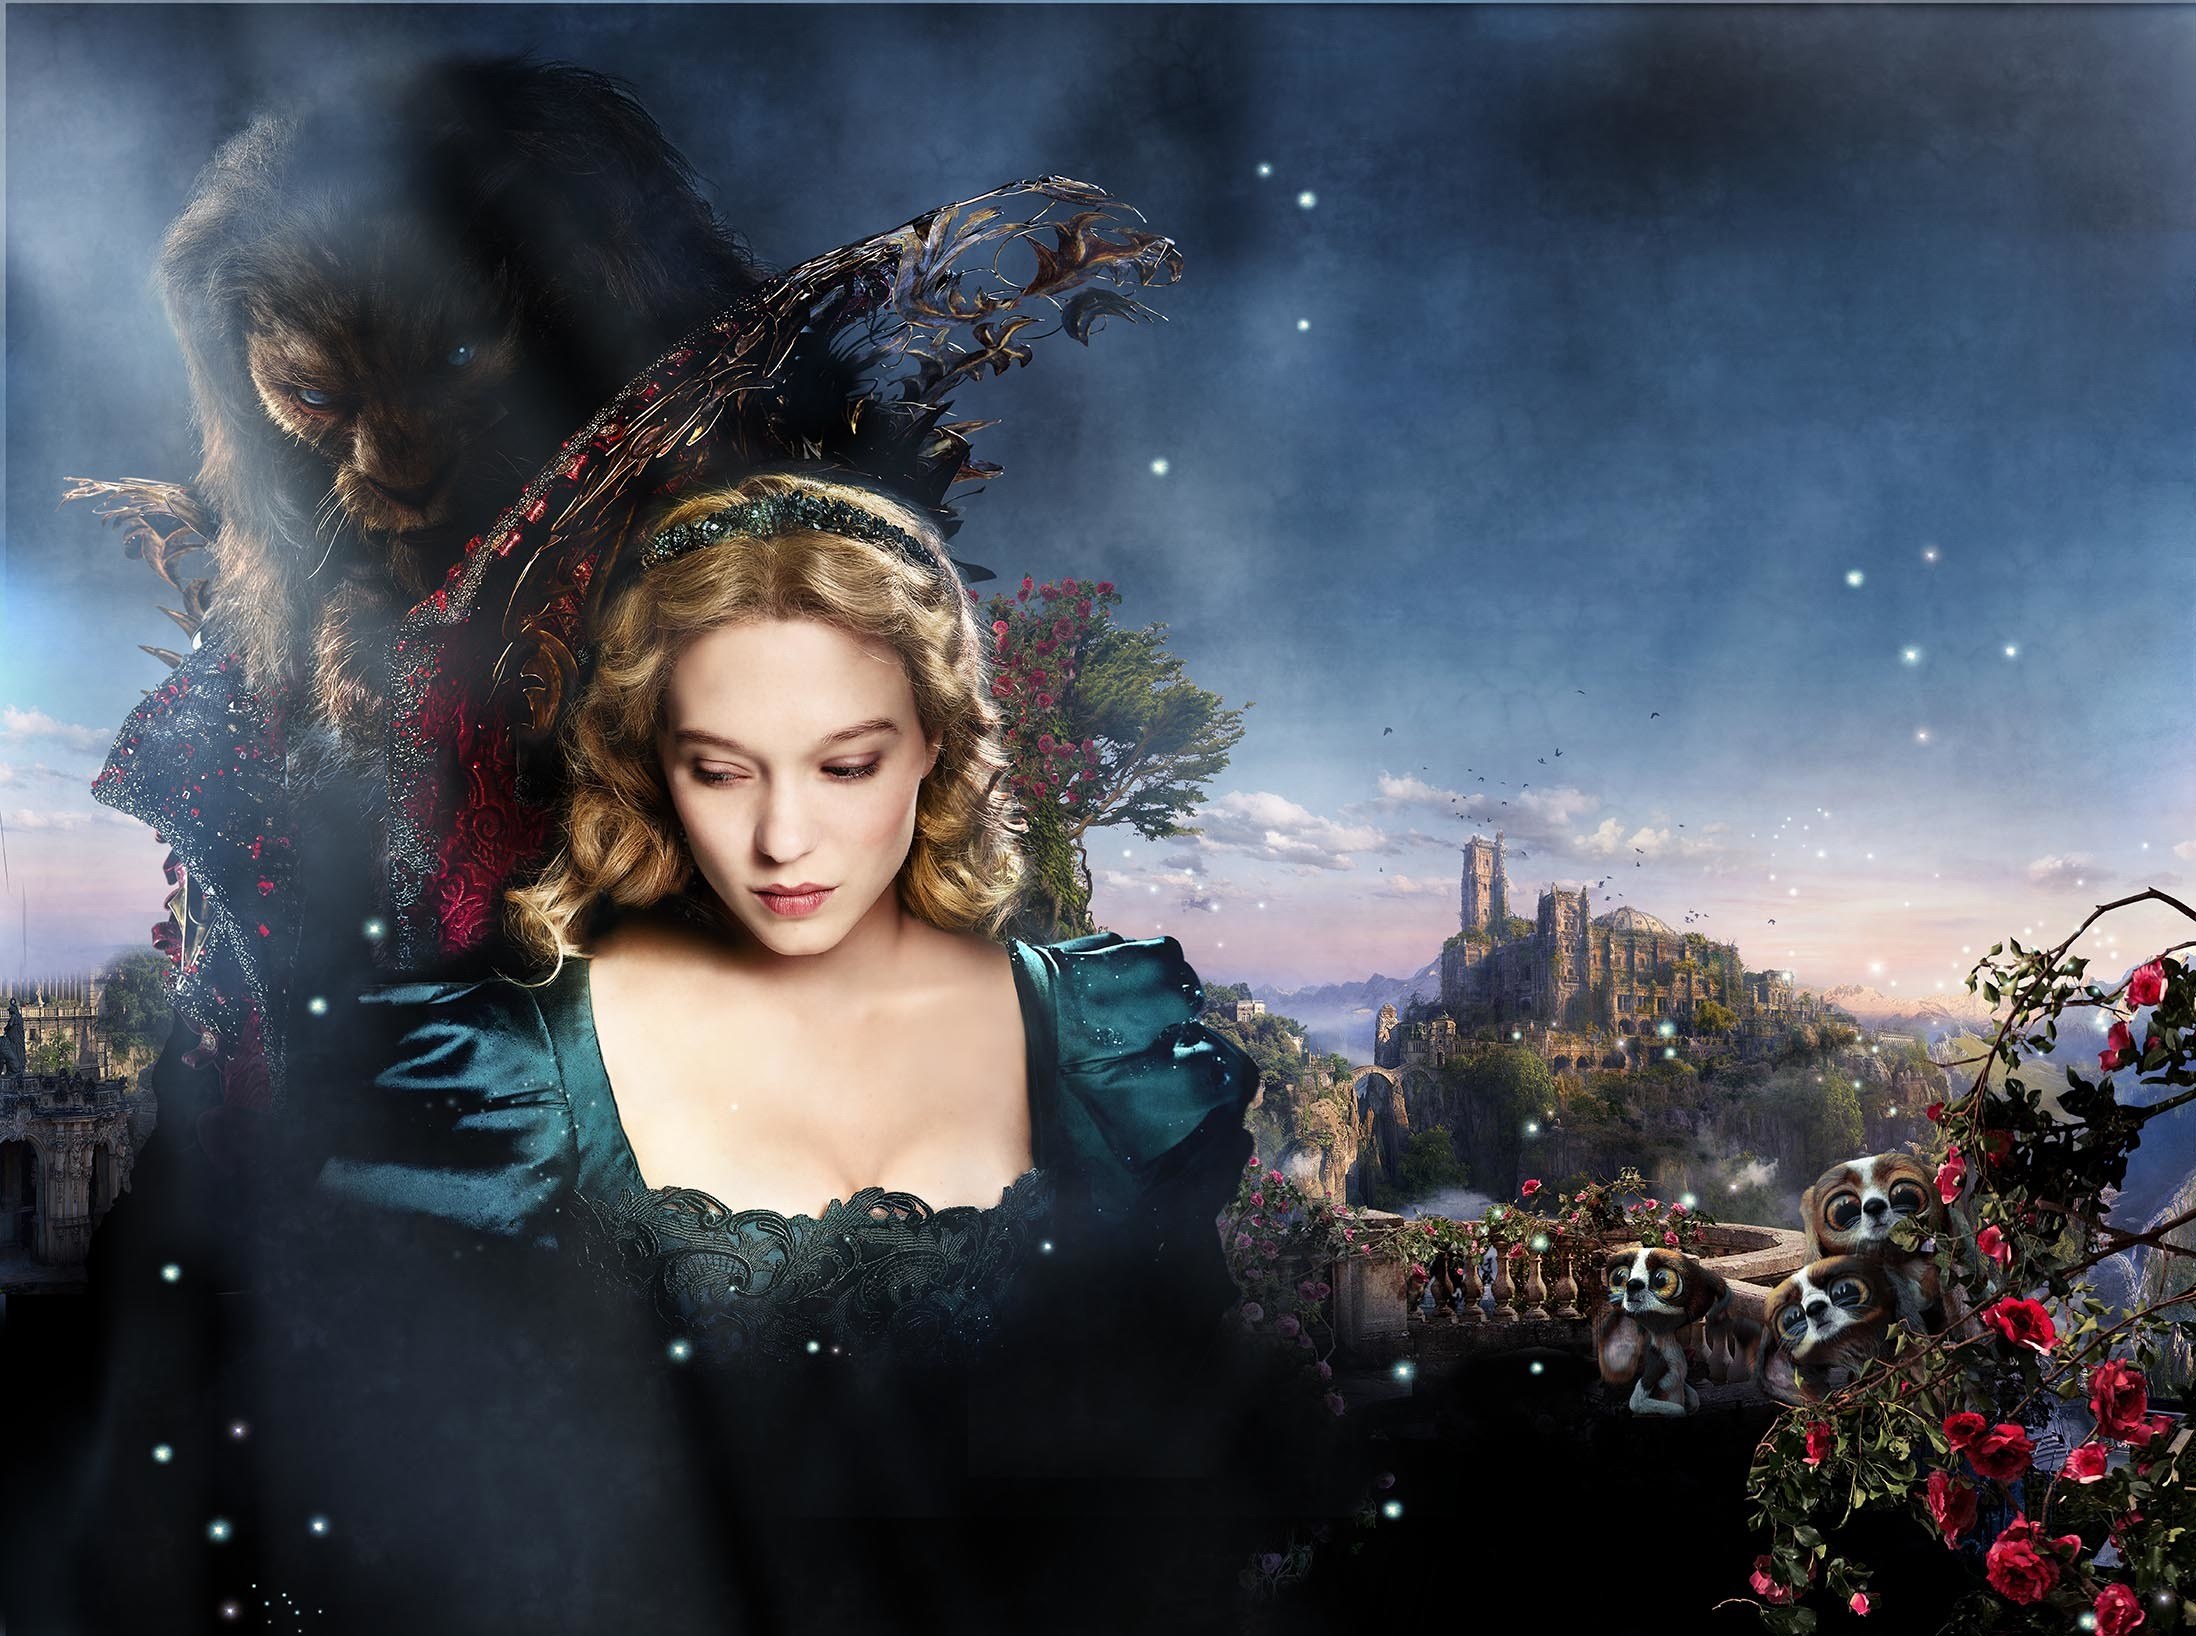 beauty and the best critique Now that all the old films are out there in the public domain, live-action remakes are the best way to keep the story brands alive, starting with maleficent in 2014, cinderella in 2015 and now this.